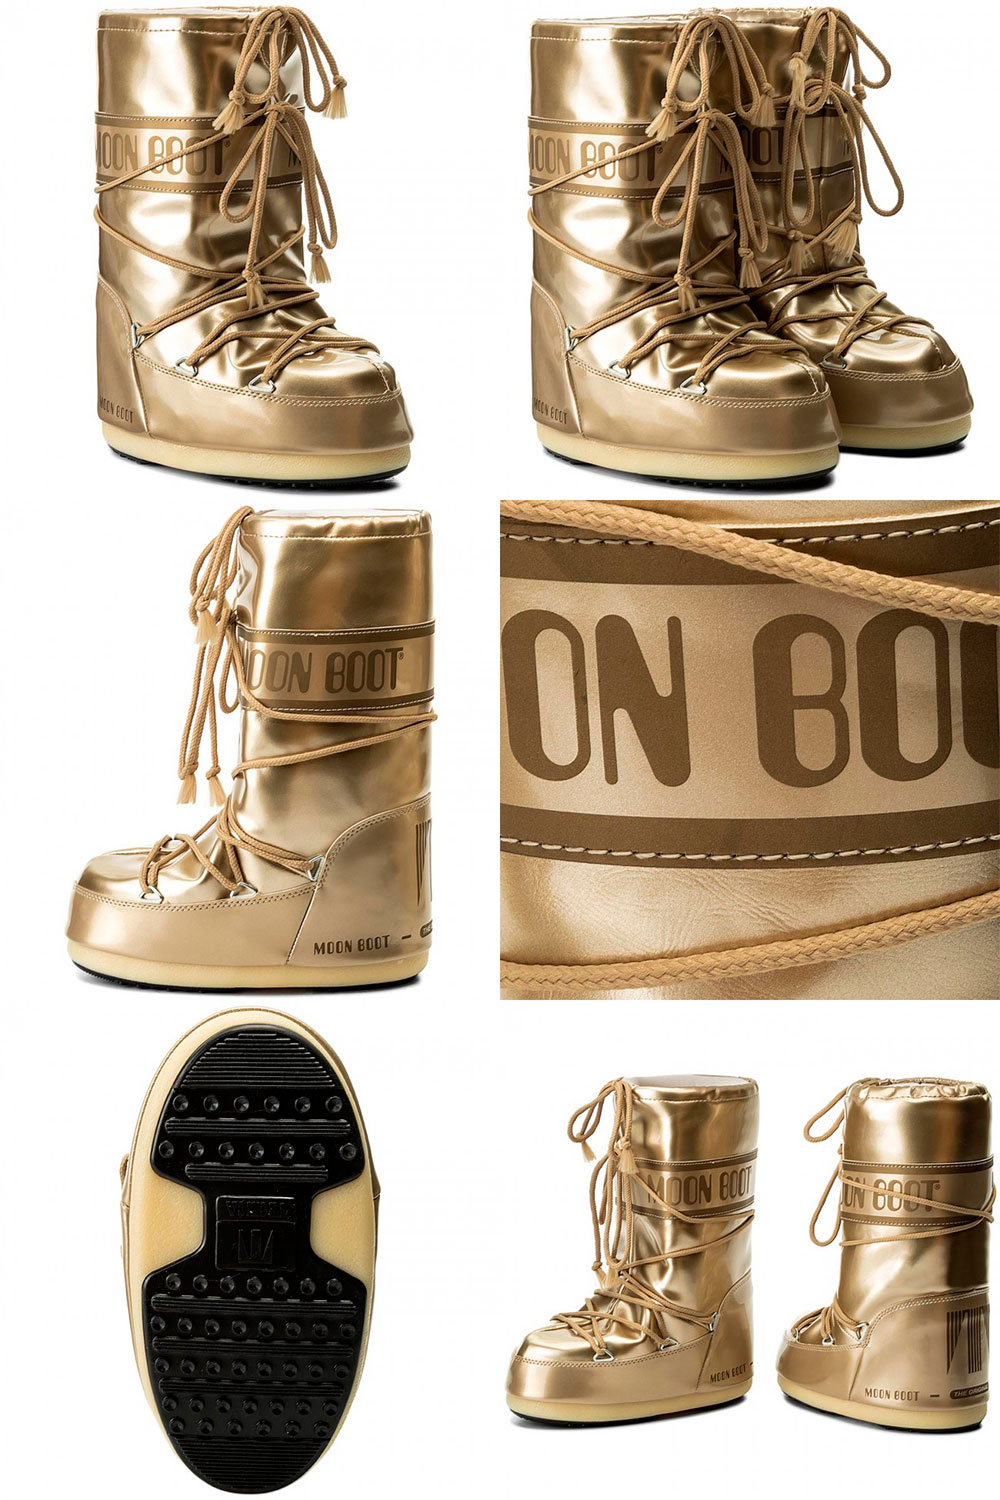 http://www.moonboot.net.ua/images/upload/gold-vinyl-mon-boot-kids-детские-лунооды-мунбуты.jpg